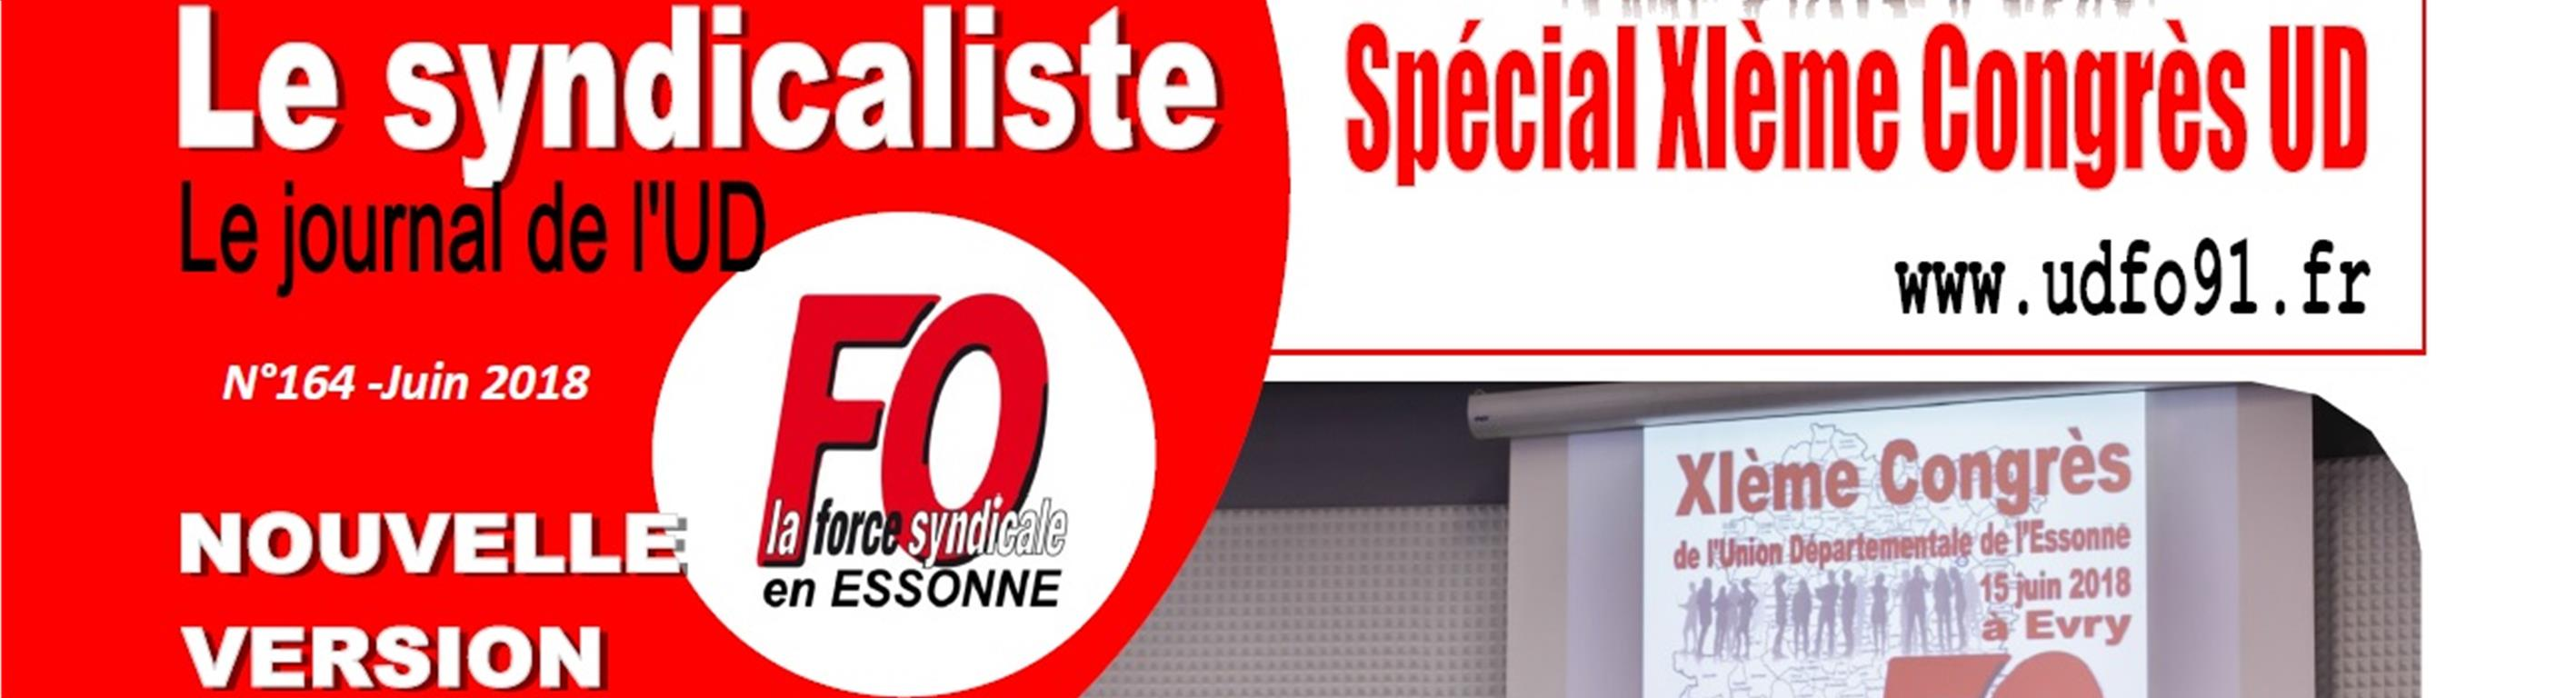 Journal Le Syndicaliste FO 91